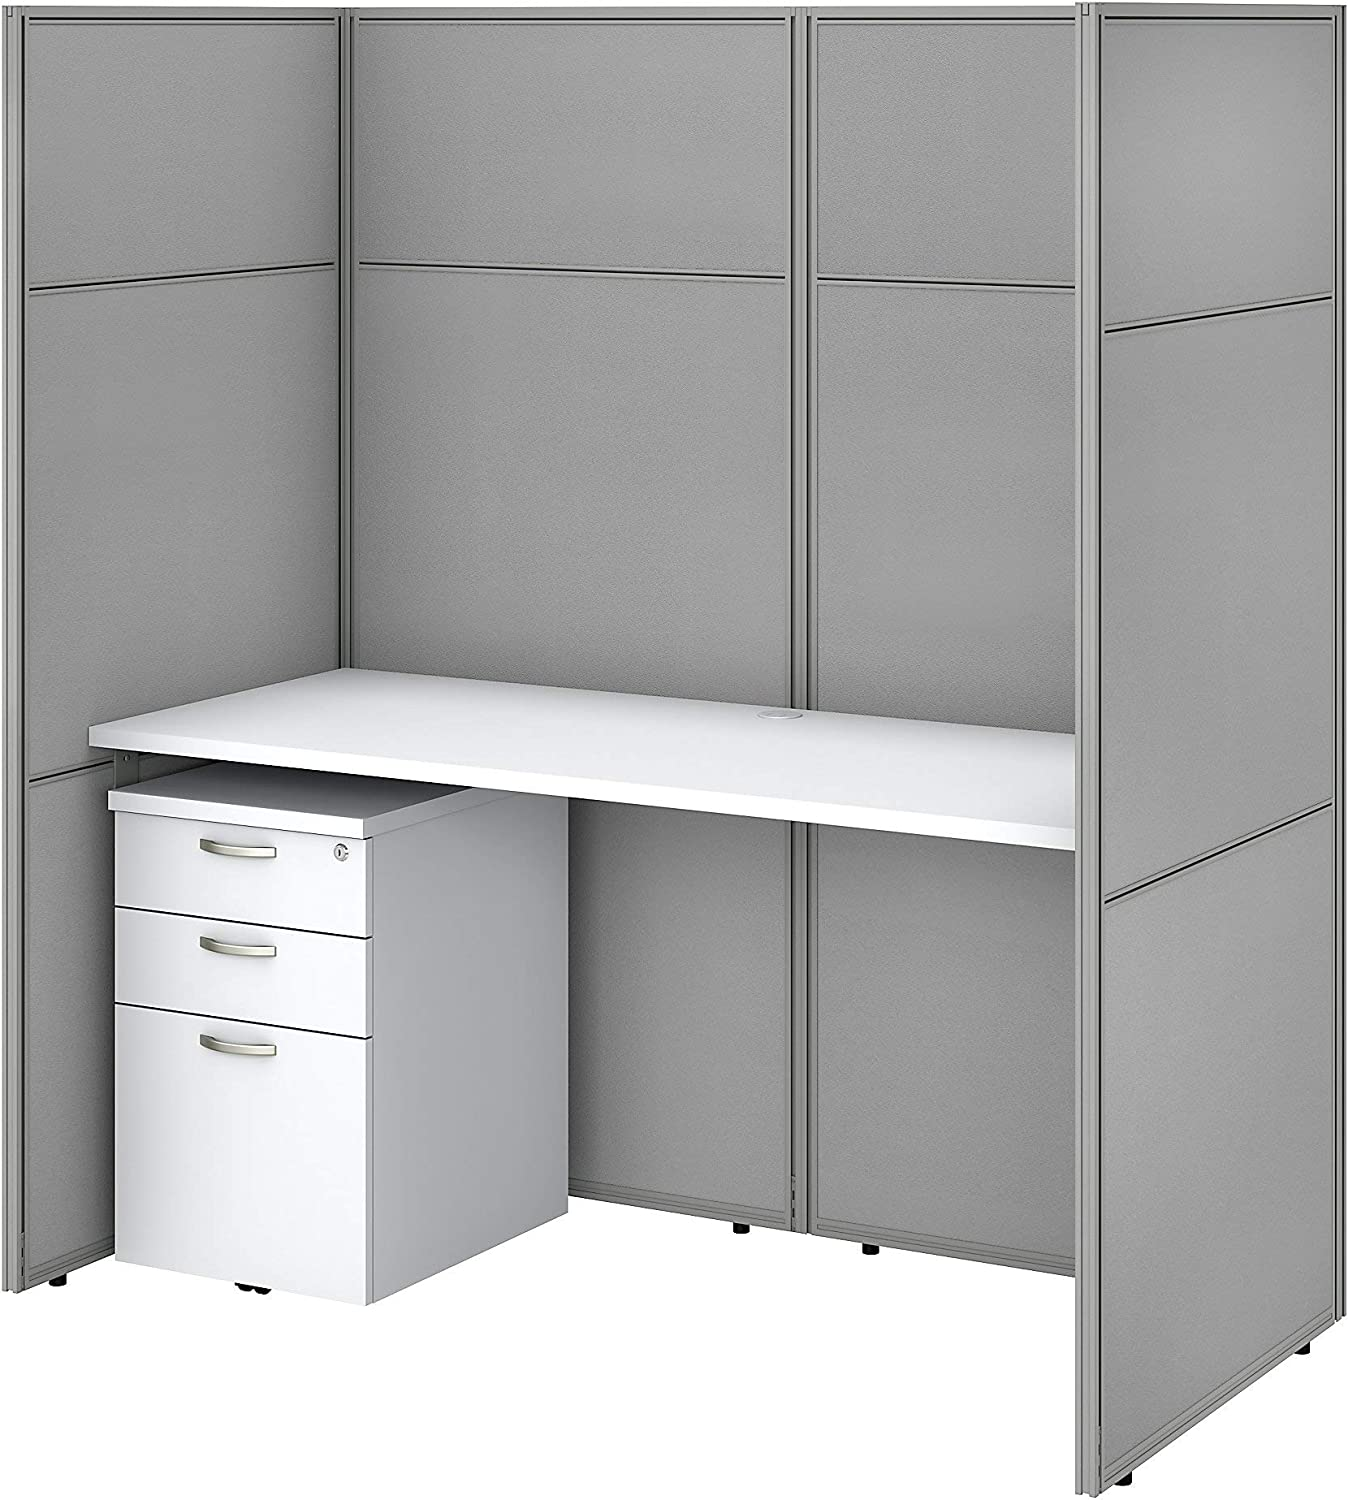 Amazon Com Bush Business Furniture Easy Office Cubicle Desk With File Cabinet And Closed Panels Workstation 60w X 66h Pure White Furniture Decor